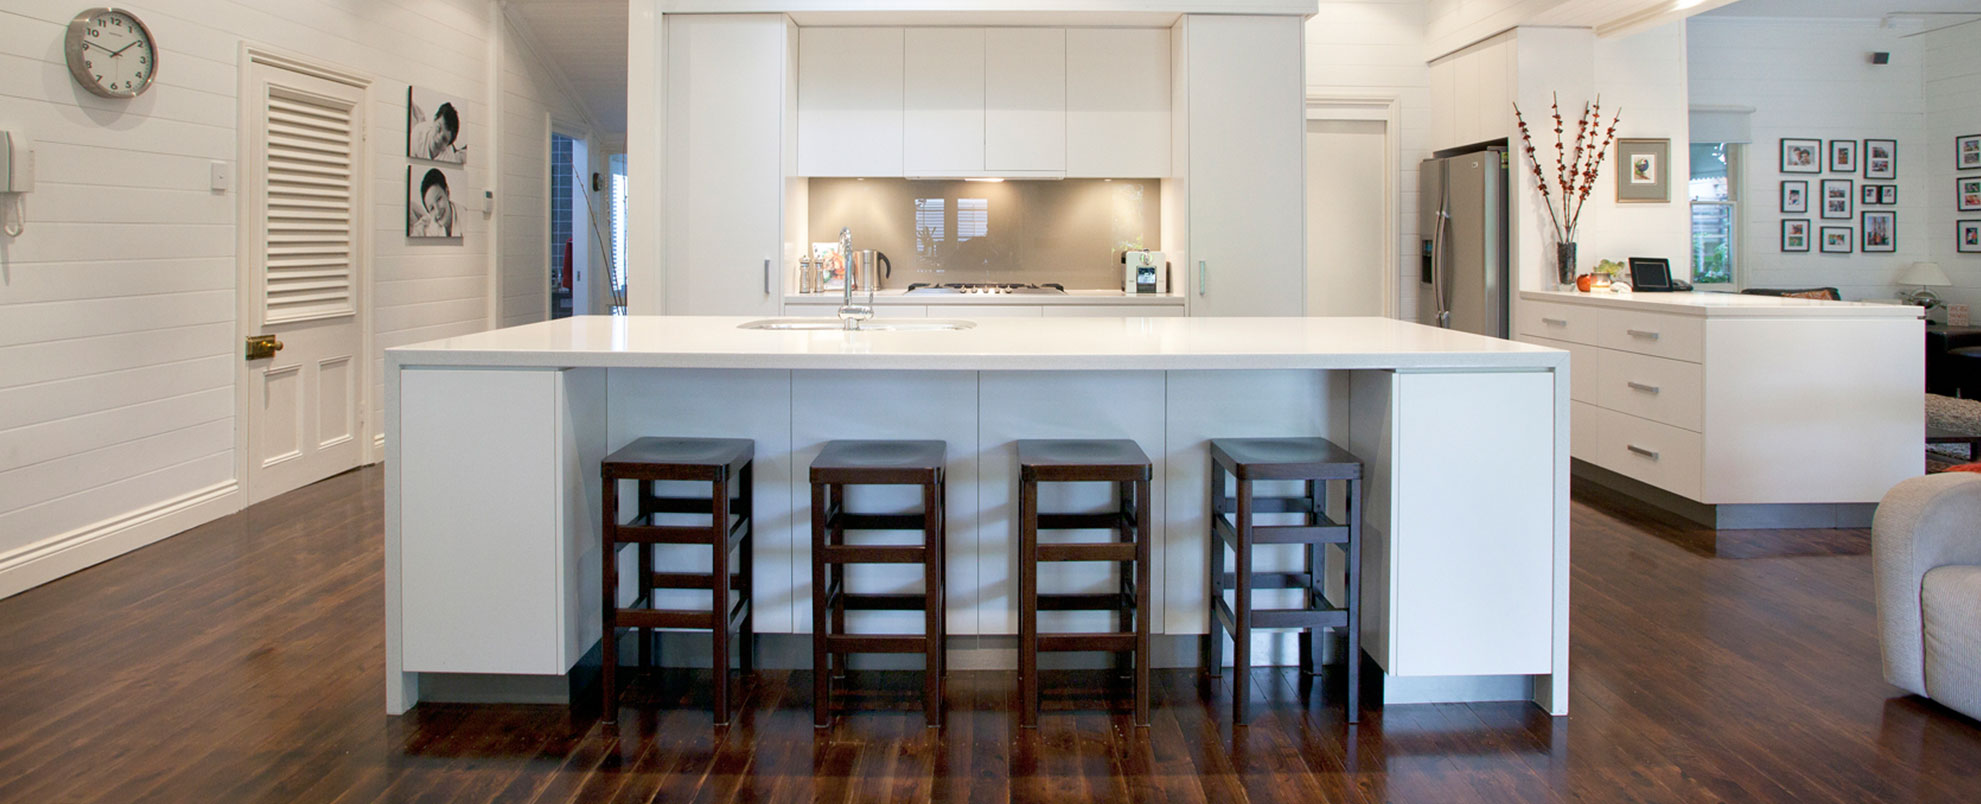 kitchens brisbane 1